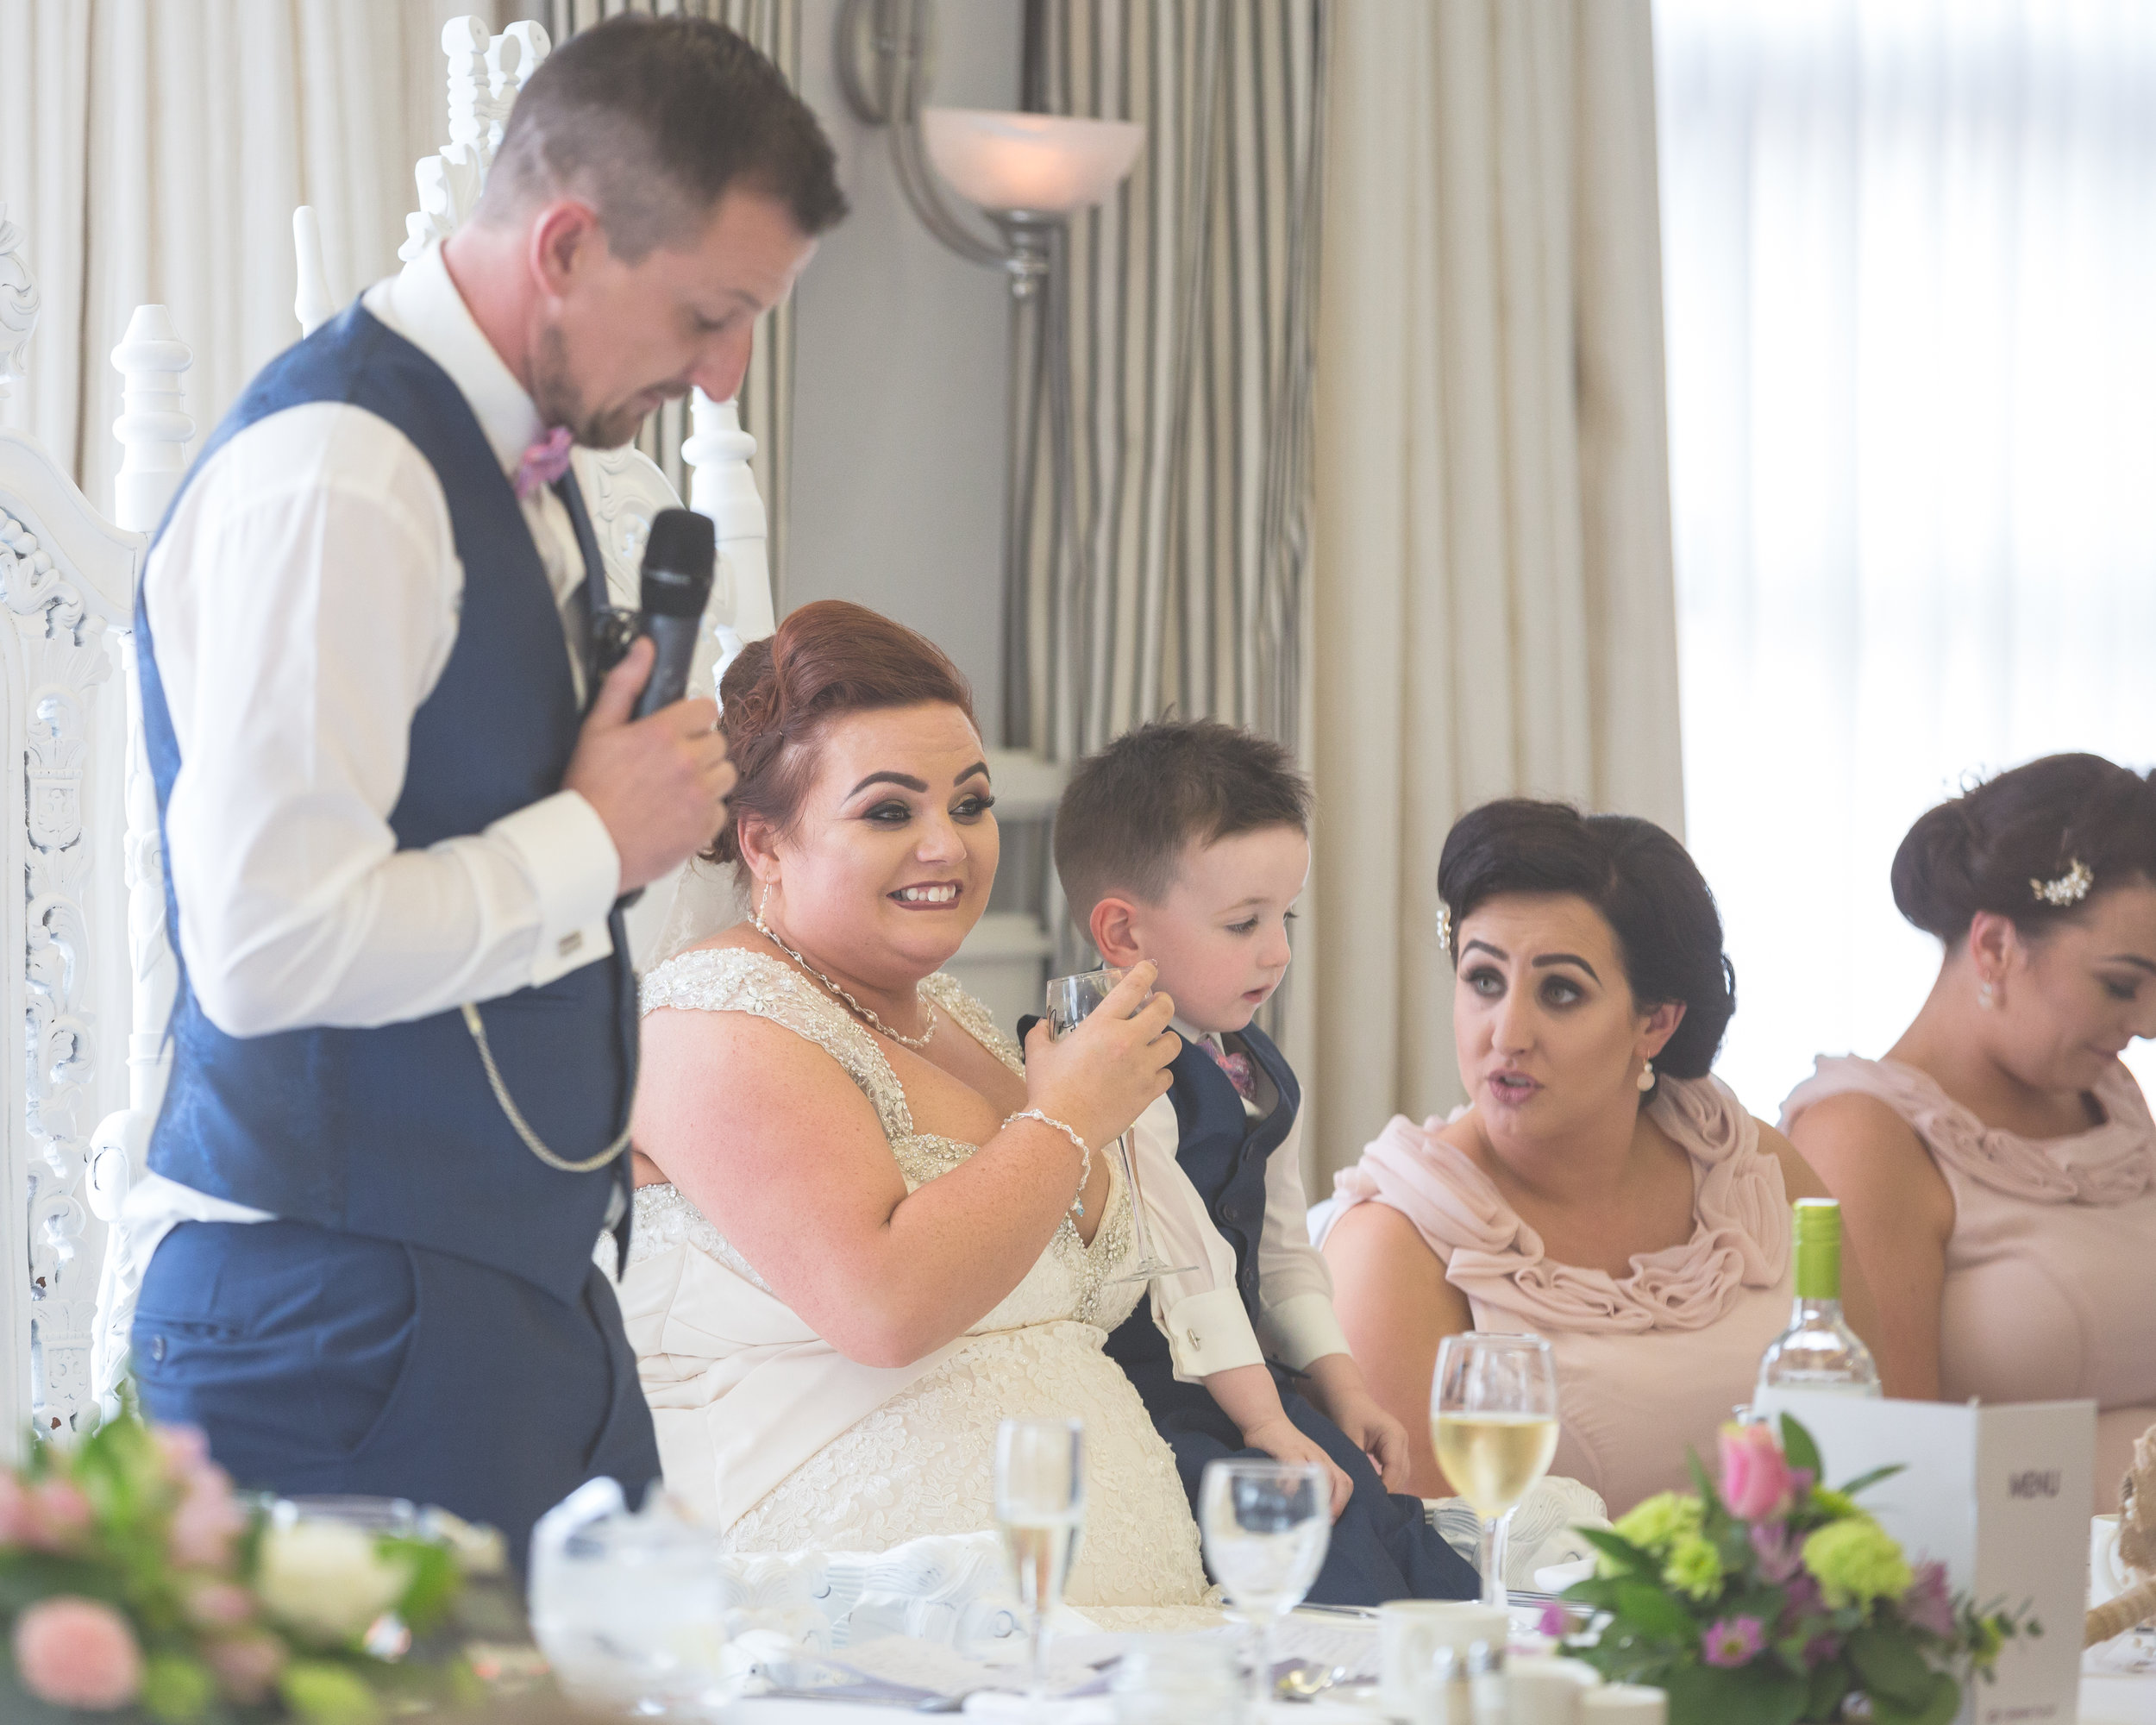 Antoinette & Stephen - Speeches | Brian McEwan Photography | Wedding Photographer Northern Ireland 81.jpg